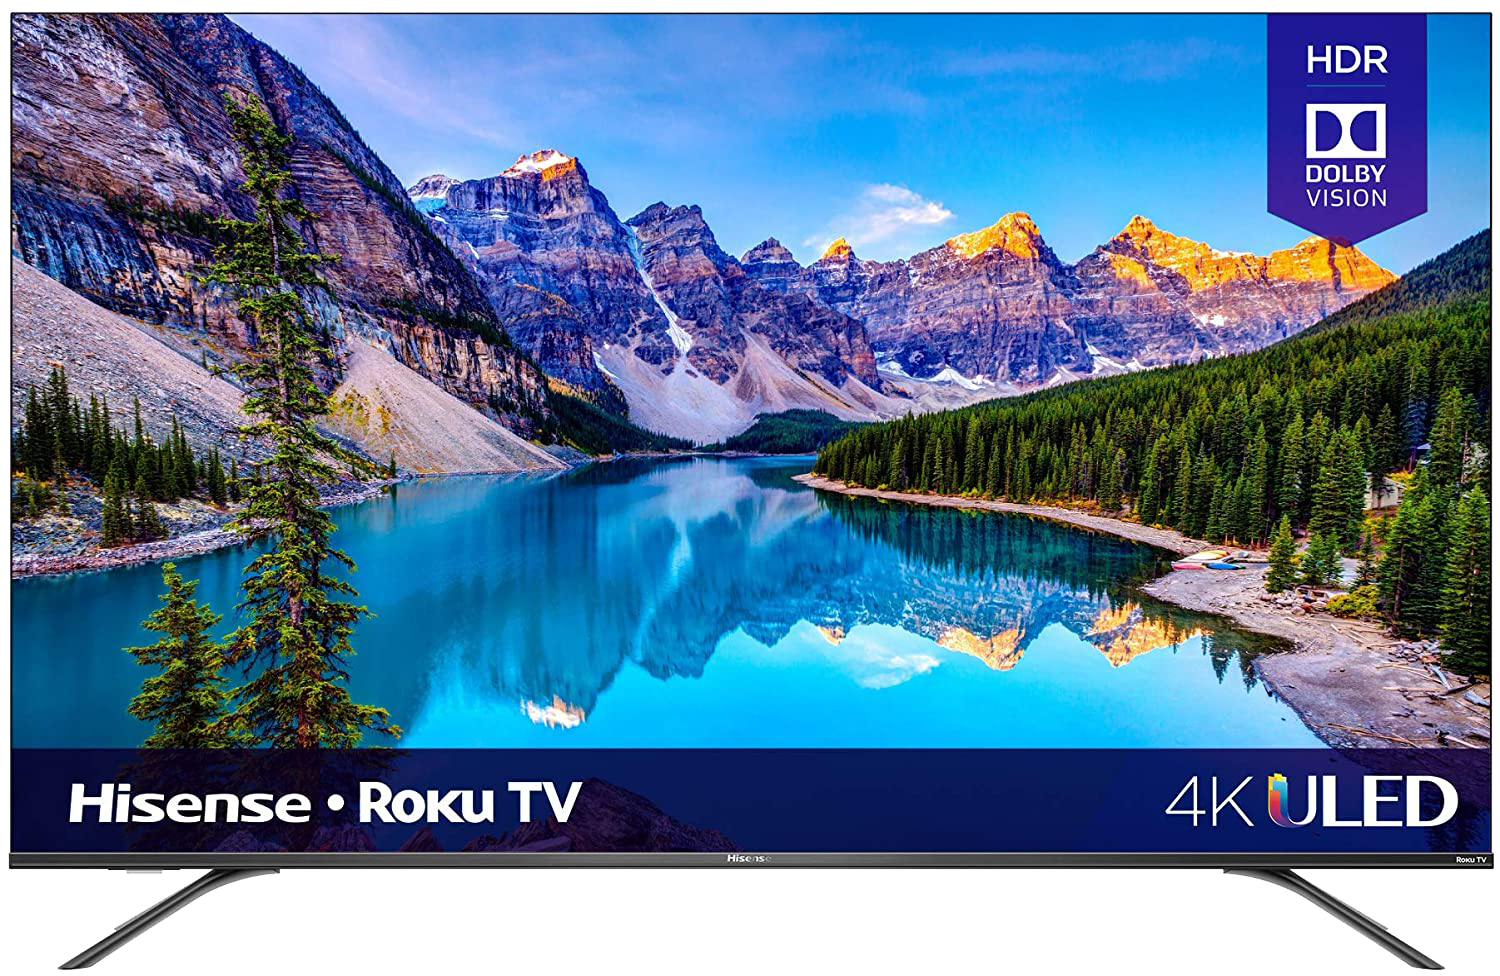 Hisense 65 inch class R8 series Dolby Vision and Atmos 4K ULED Roku smart TV